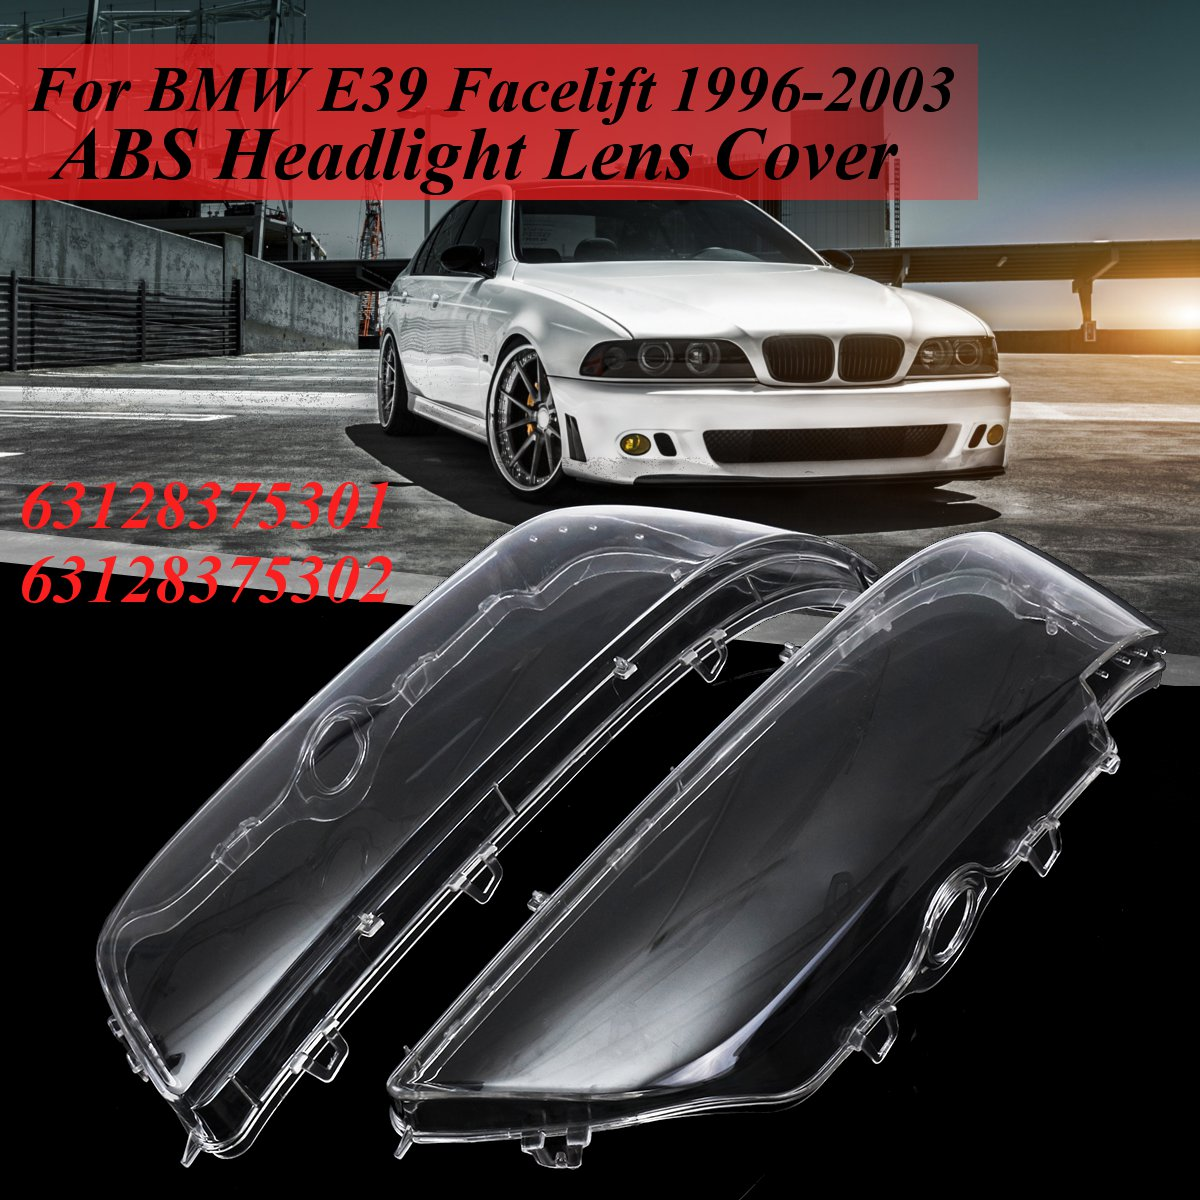 2Pcs 4-Door Left Right Headlight Lens Headlamp Lens Cover For BMW E39 Facelift 1996 1997 1998 1999-2003 63128375301 63128375302